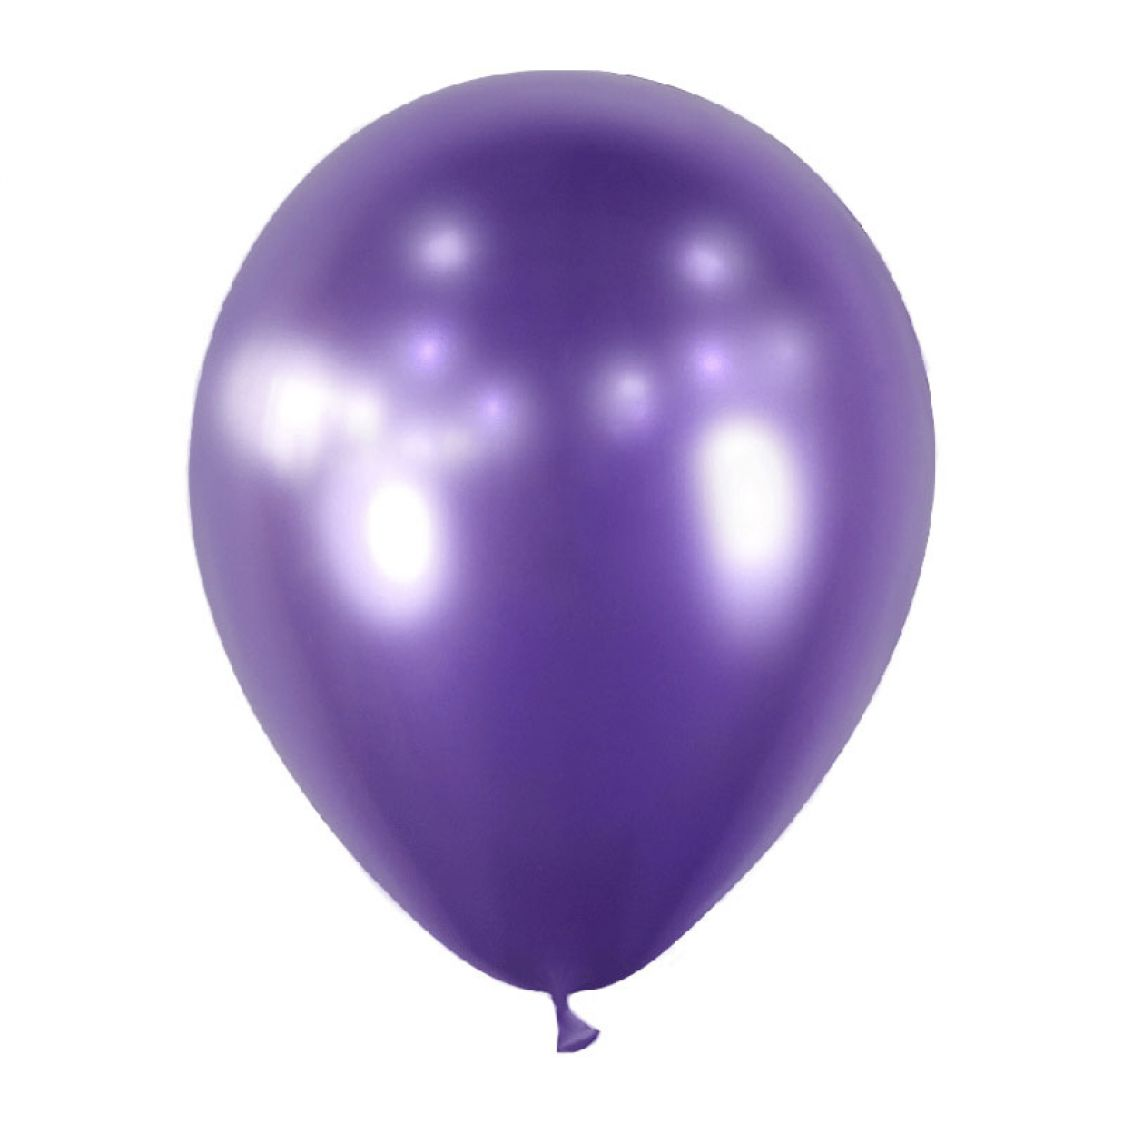 Ballon Violet Miroir Chrome